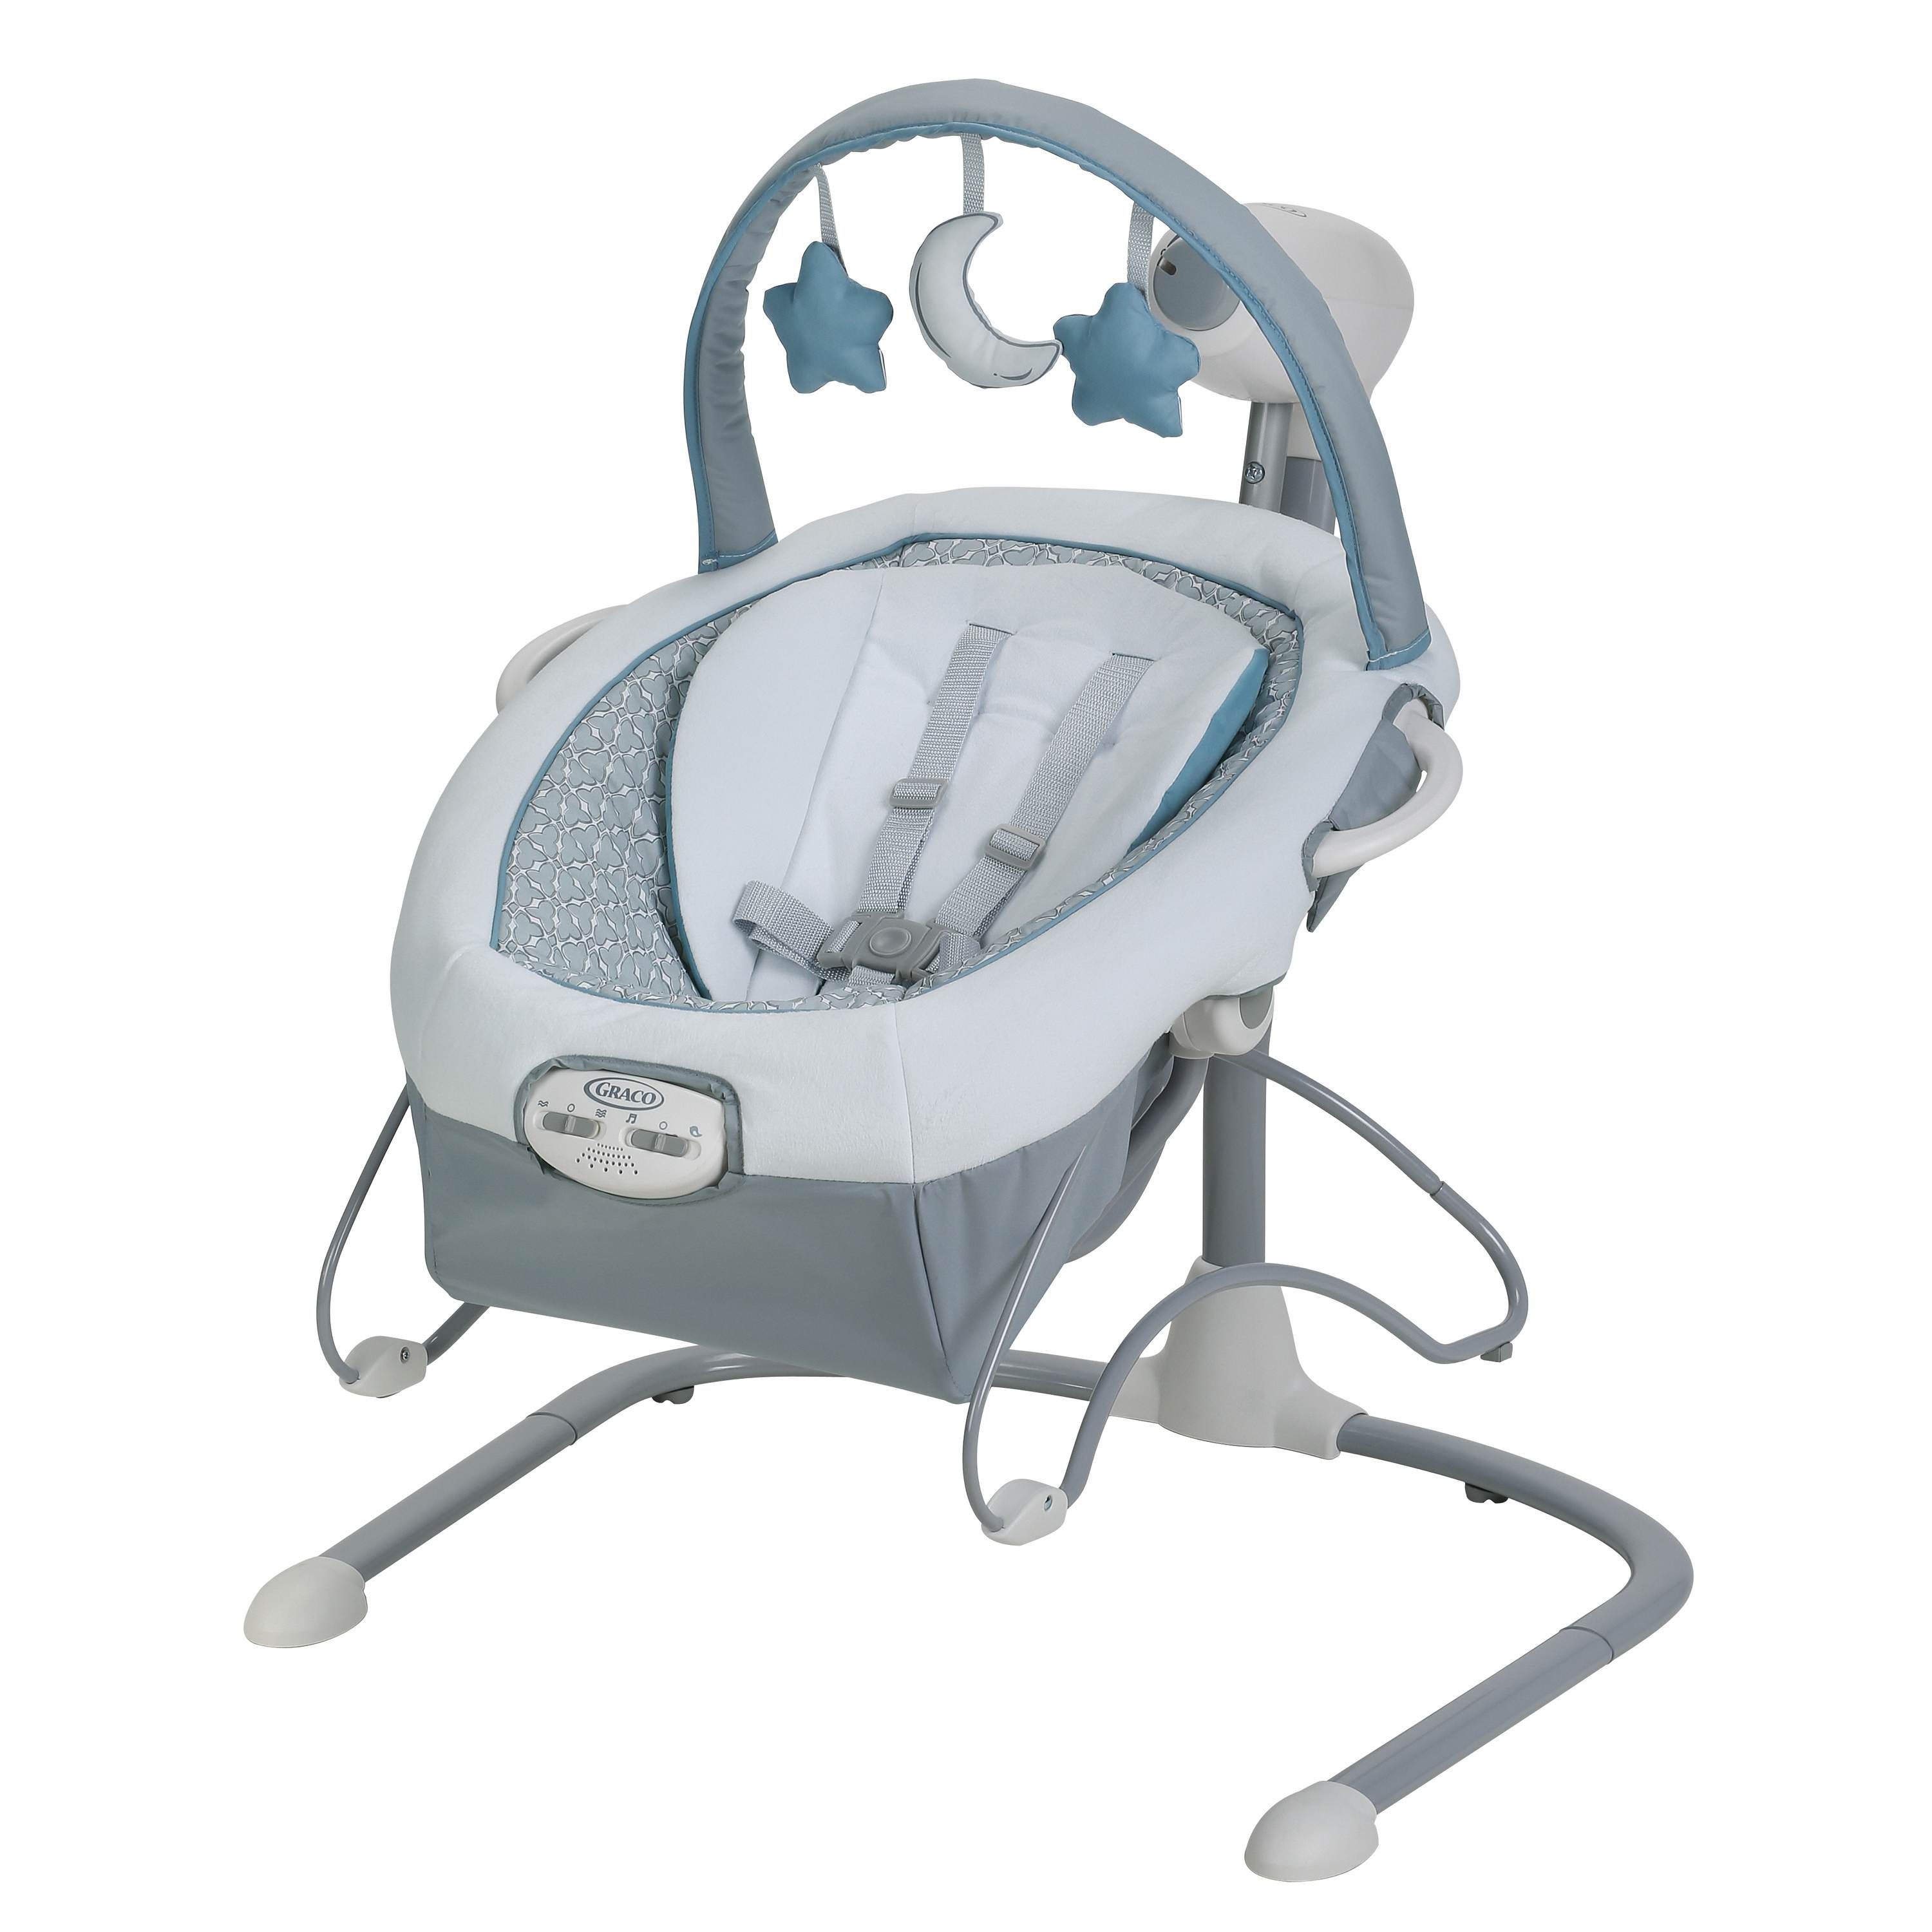 Graco Duet Sway LX Baby Swing with Portable Bouncer, Camila by Graco